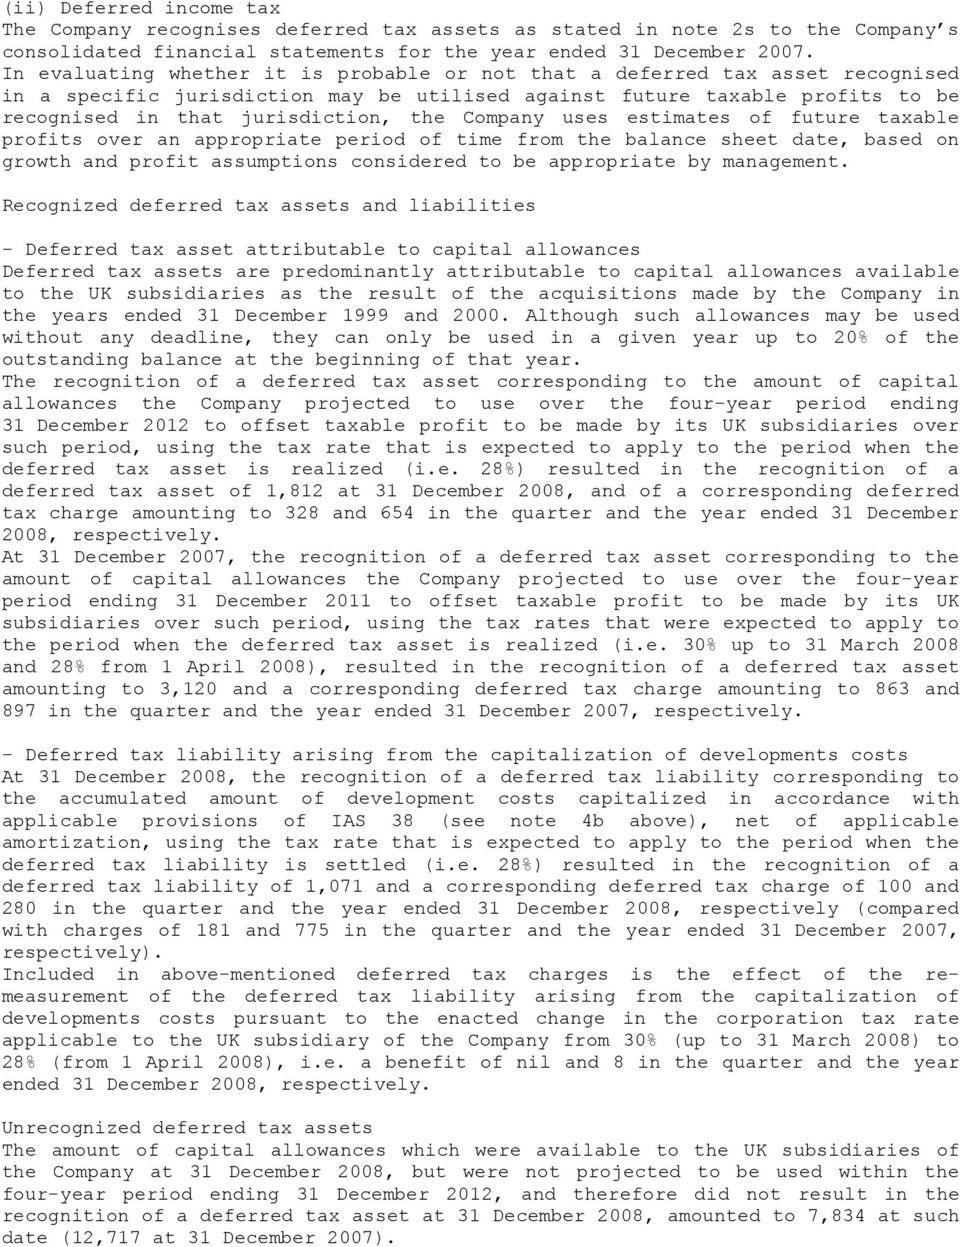 Company uses estimates of future taxable profits over an appropriate period of time from the balance sheet date, based on growth and profit assumptions considered to be appropriate by management.